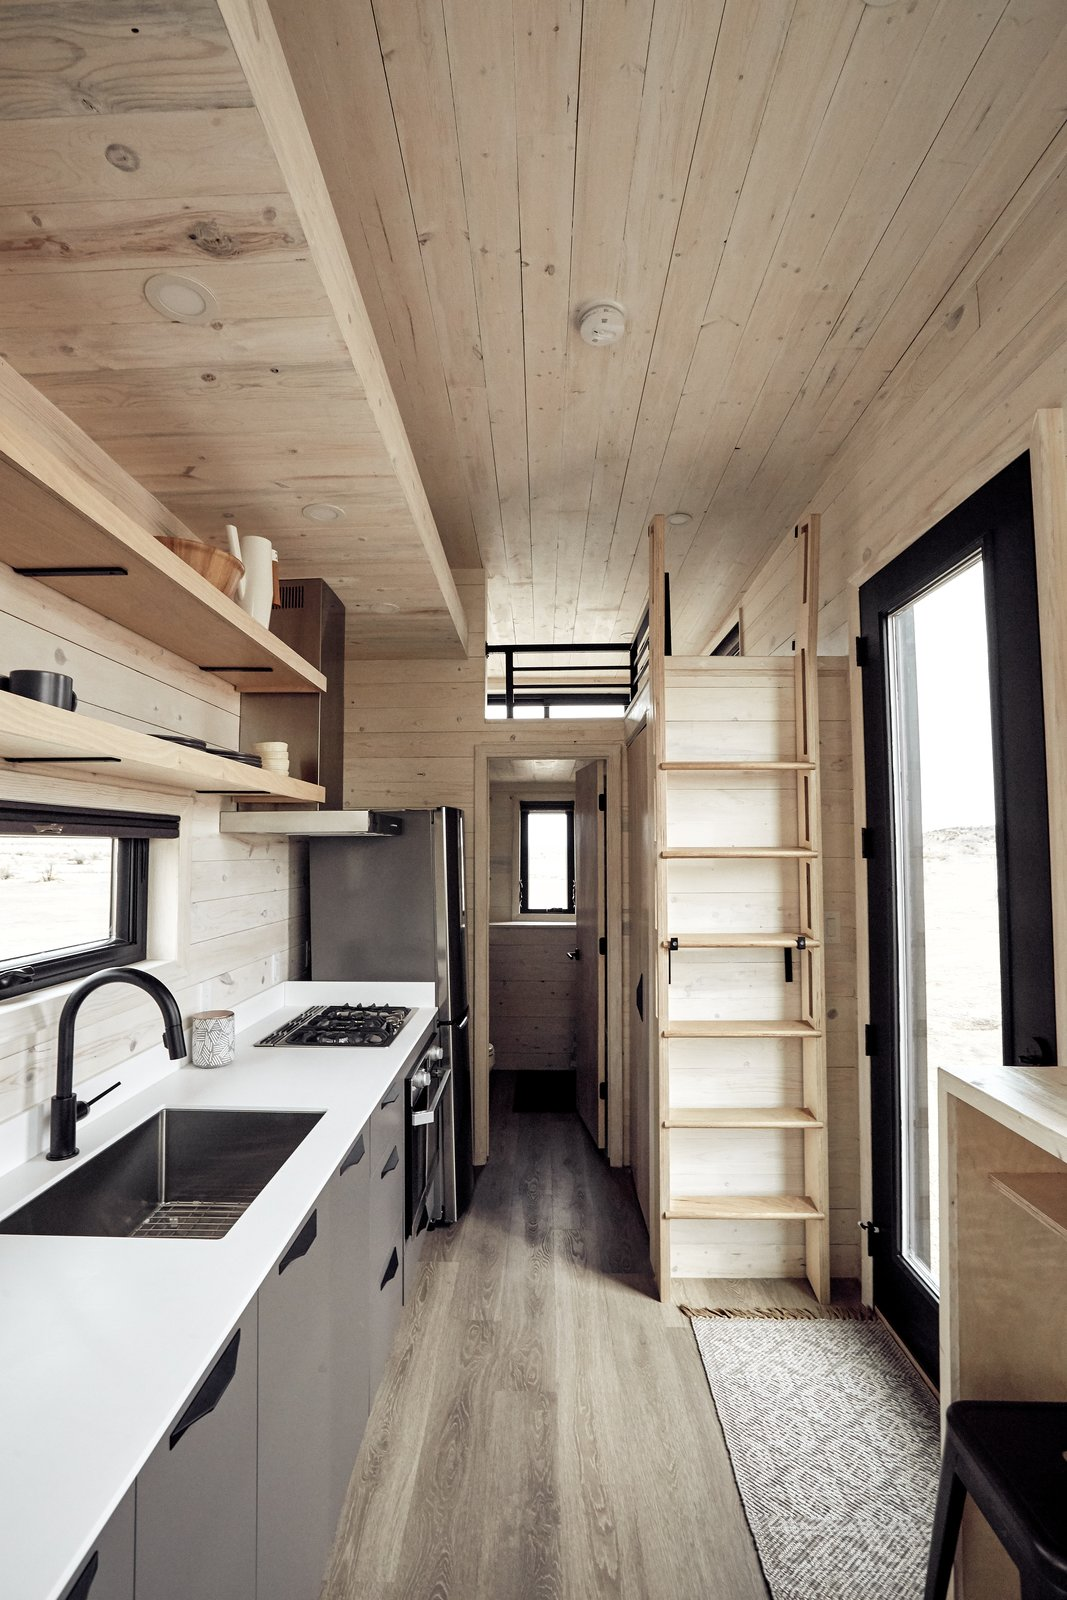 Kitchen, Refrigerator, Ceiling Lighting, Range Hood, Cooktops, Undermount Sink, and Wall Oven The tall ladder lives secured against the wall, but can be attached to either the guest loft or storage soffit, providing access to either.    Photo 6 of 14 in This Sleek Travel Trailer Is Practically a Cabin on Wheels from Land Ark RV - Drake